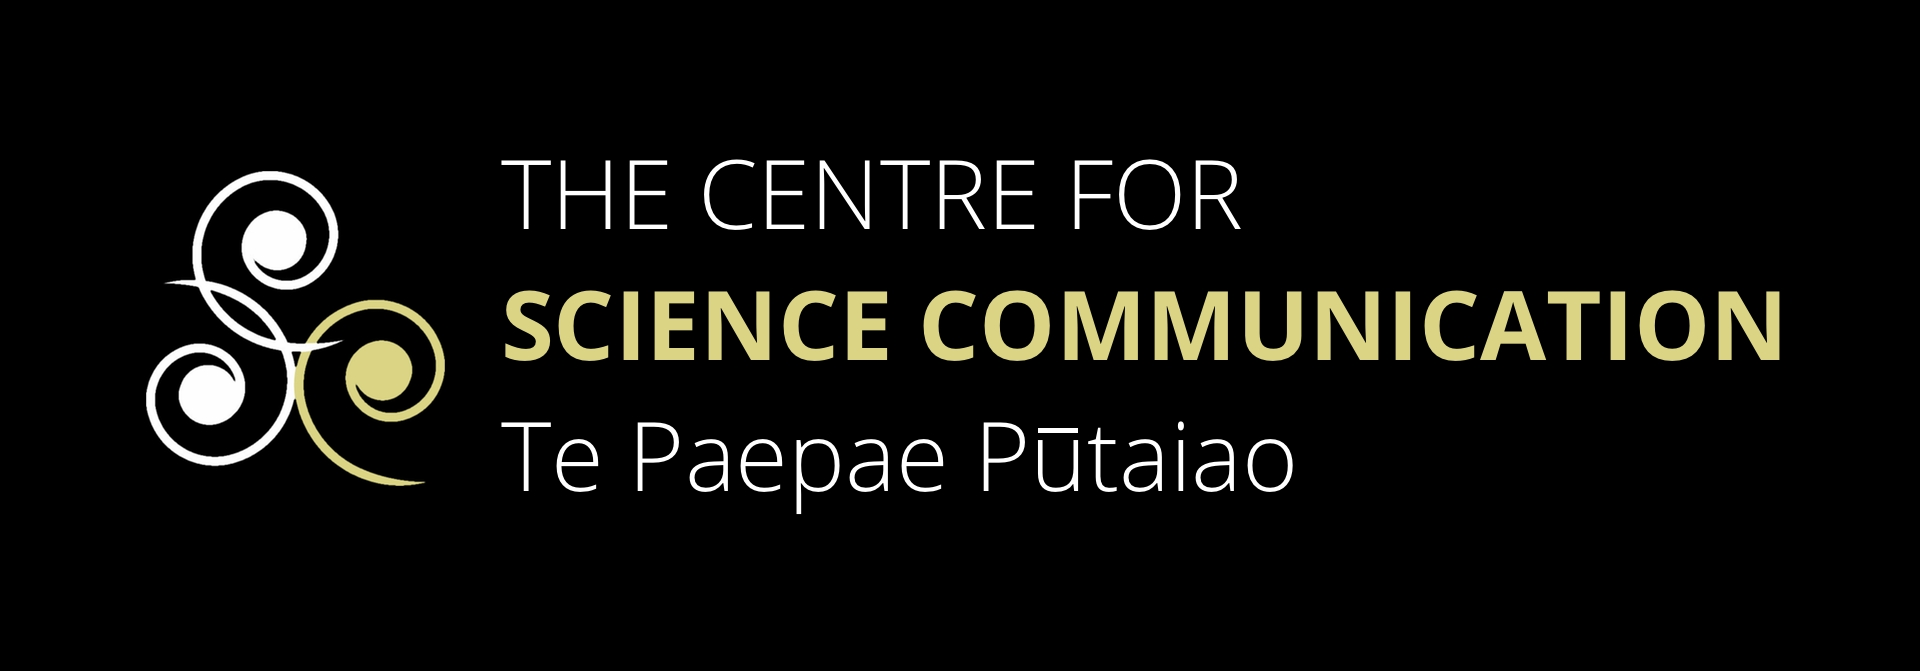 Centre-for-Science-Communication-Logo.png